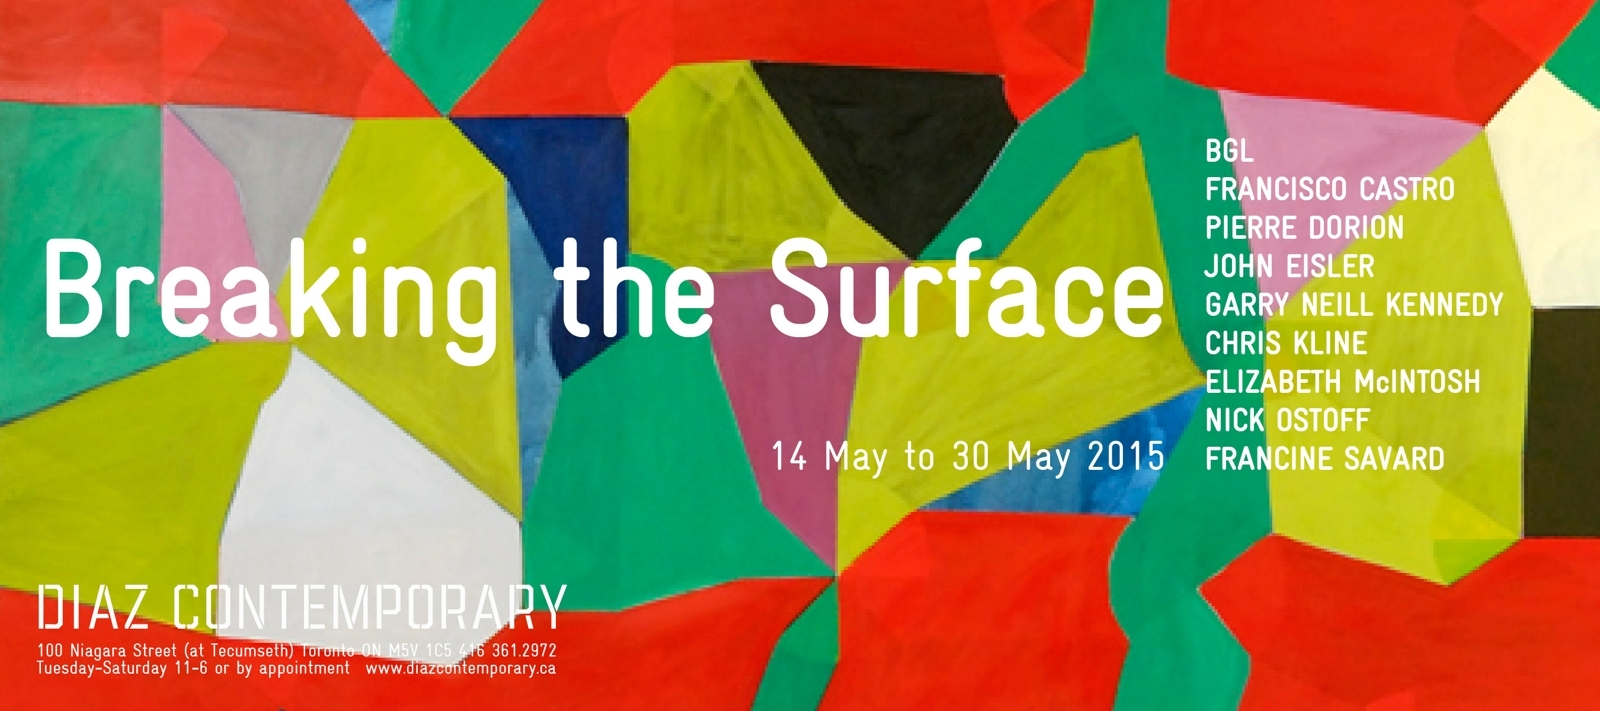 BREAKING THE SURFACE image